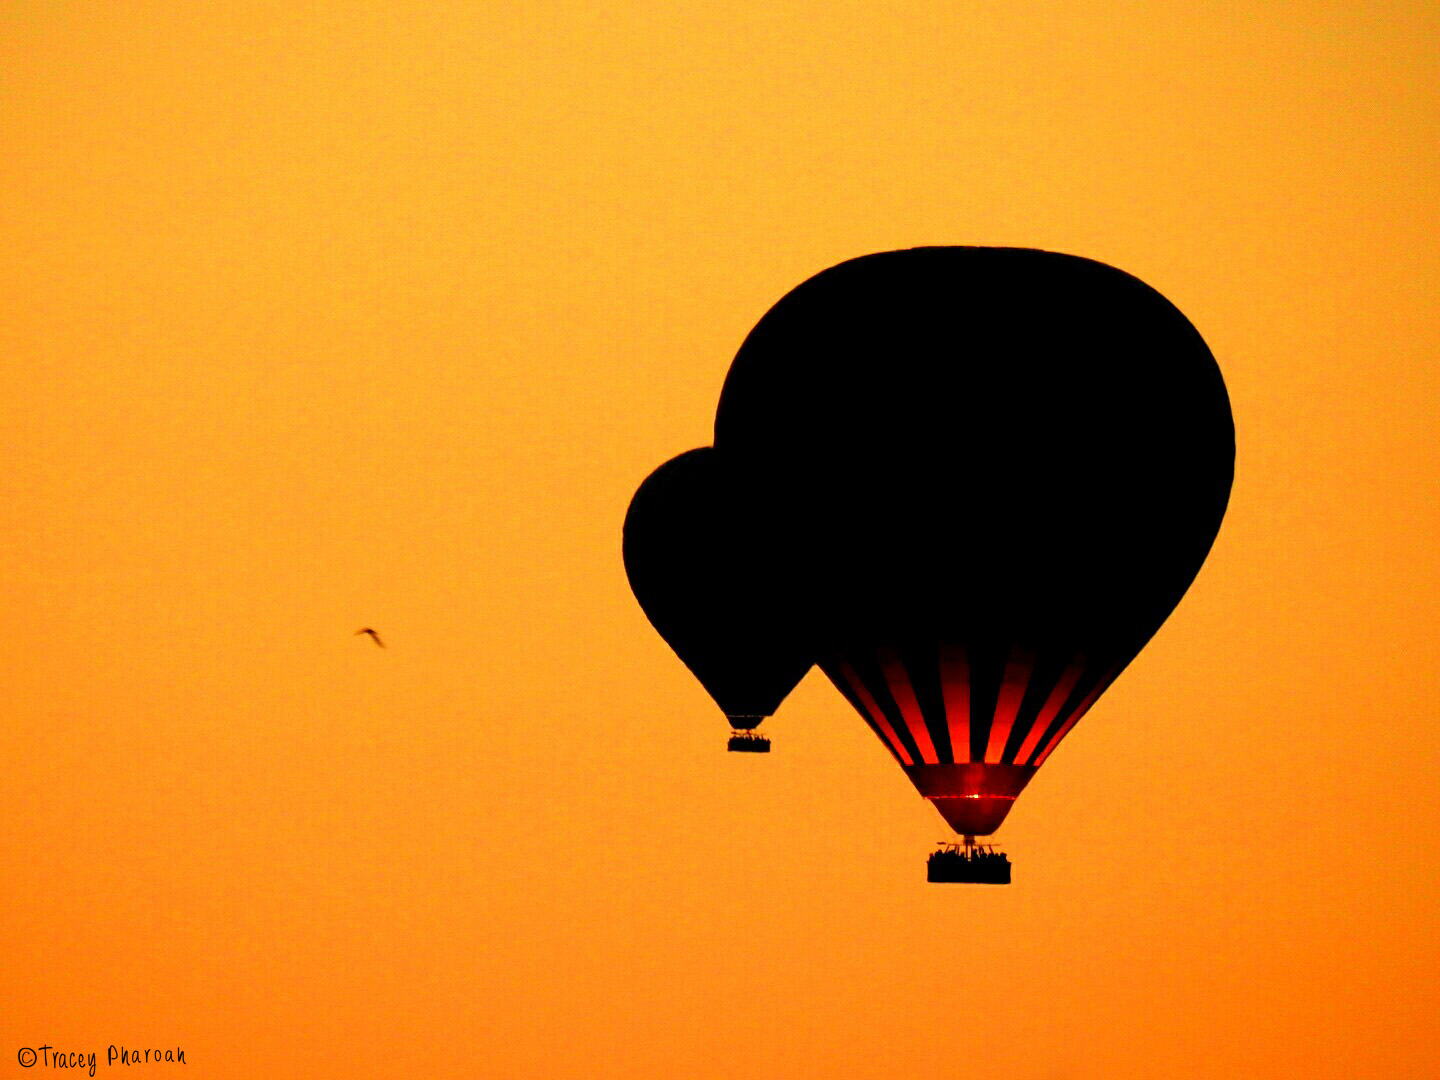 Hot Air Ballooning at sunrise over Cappadoccia, Turkey